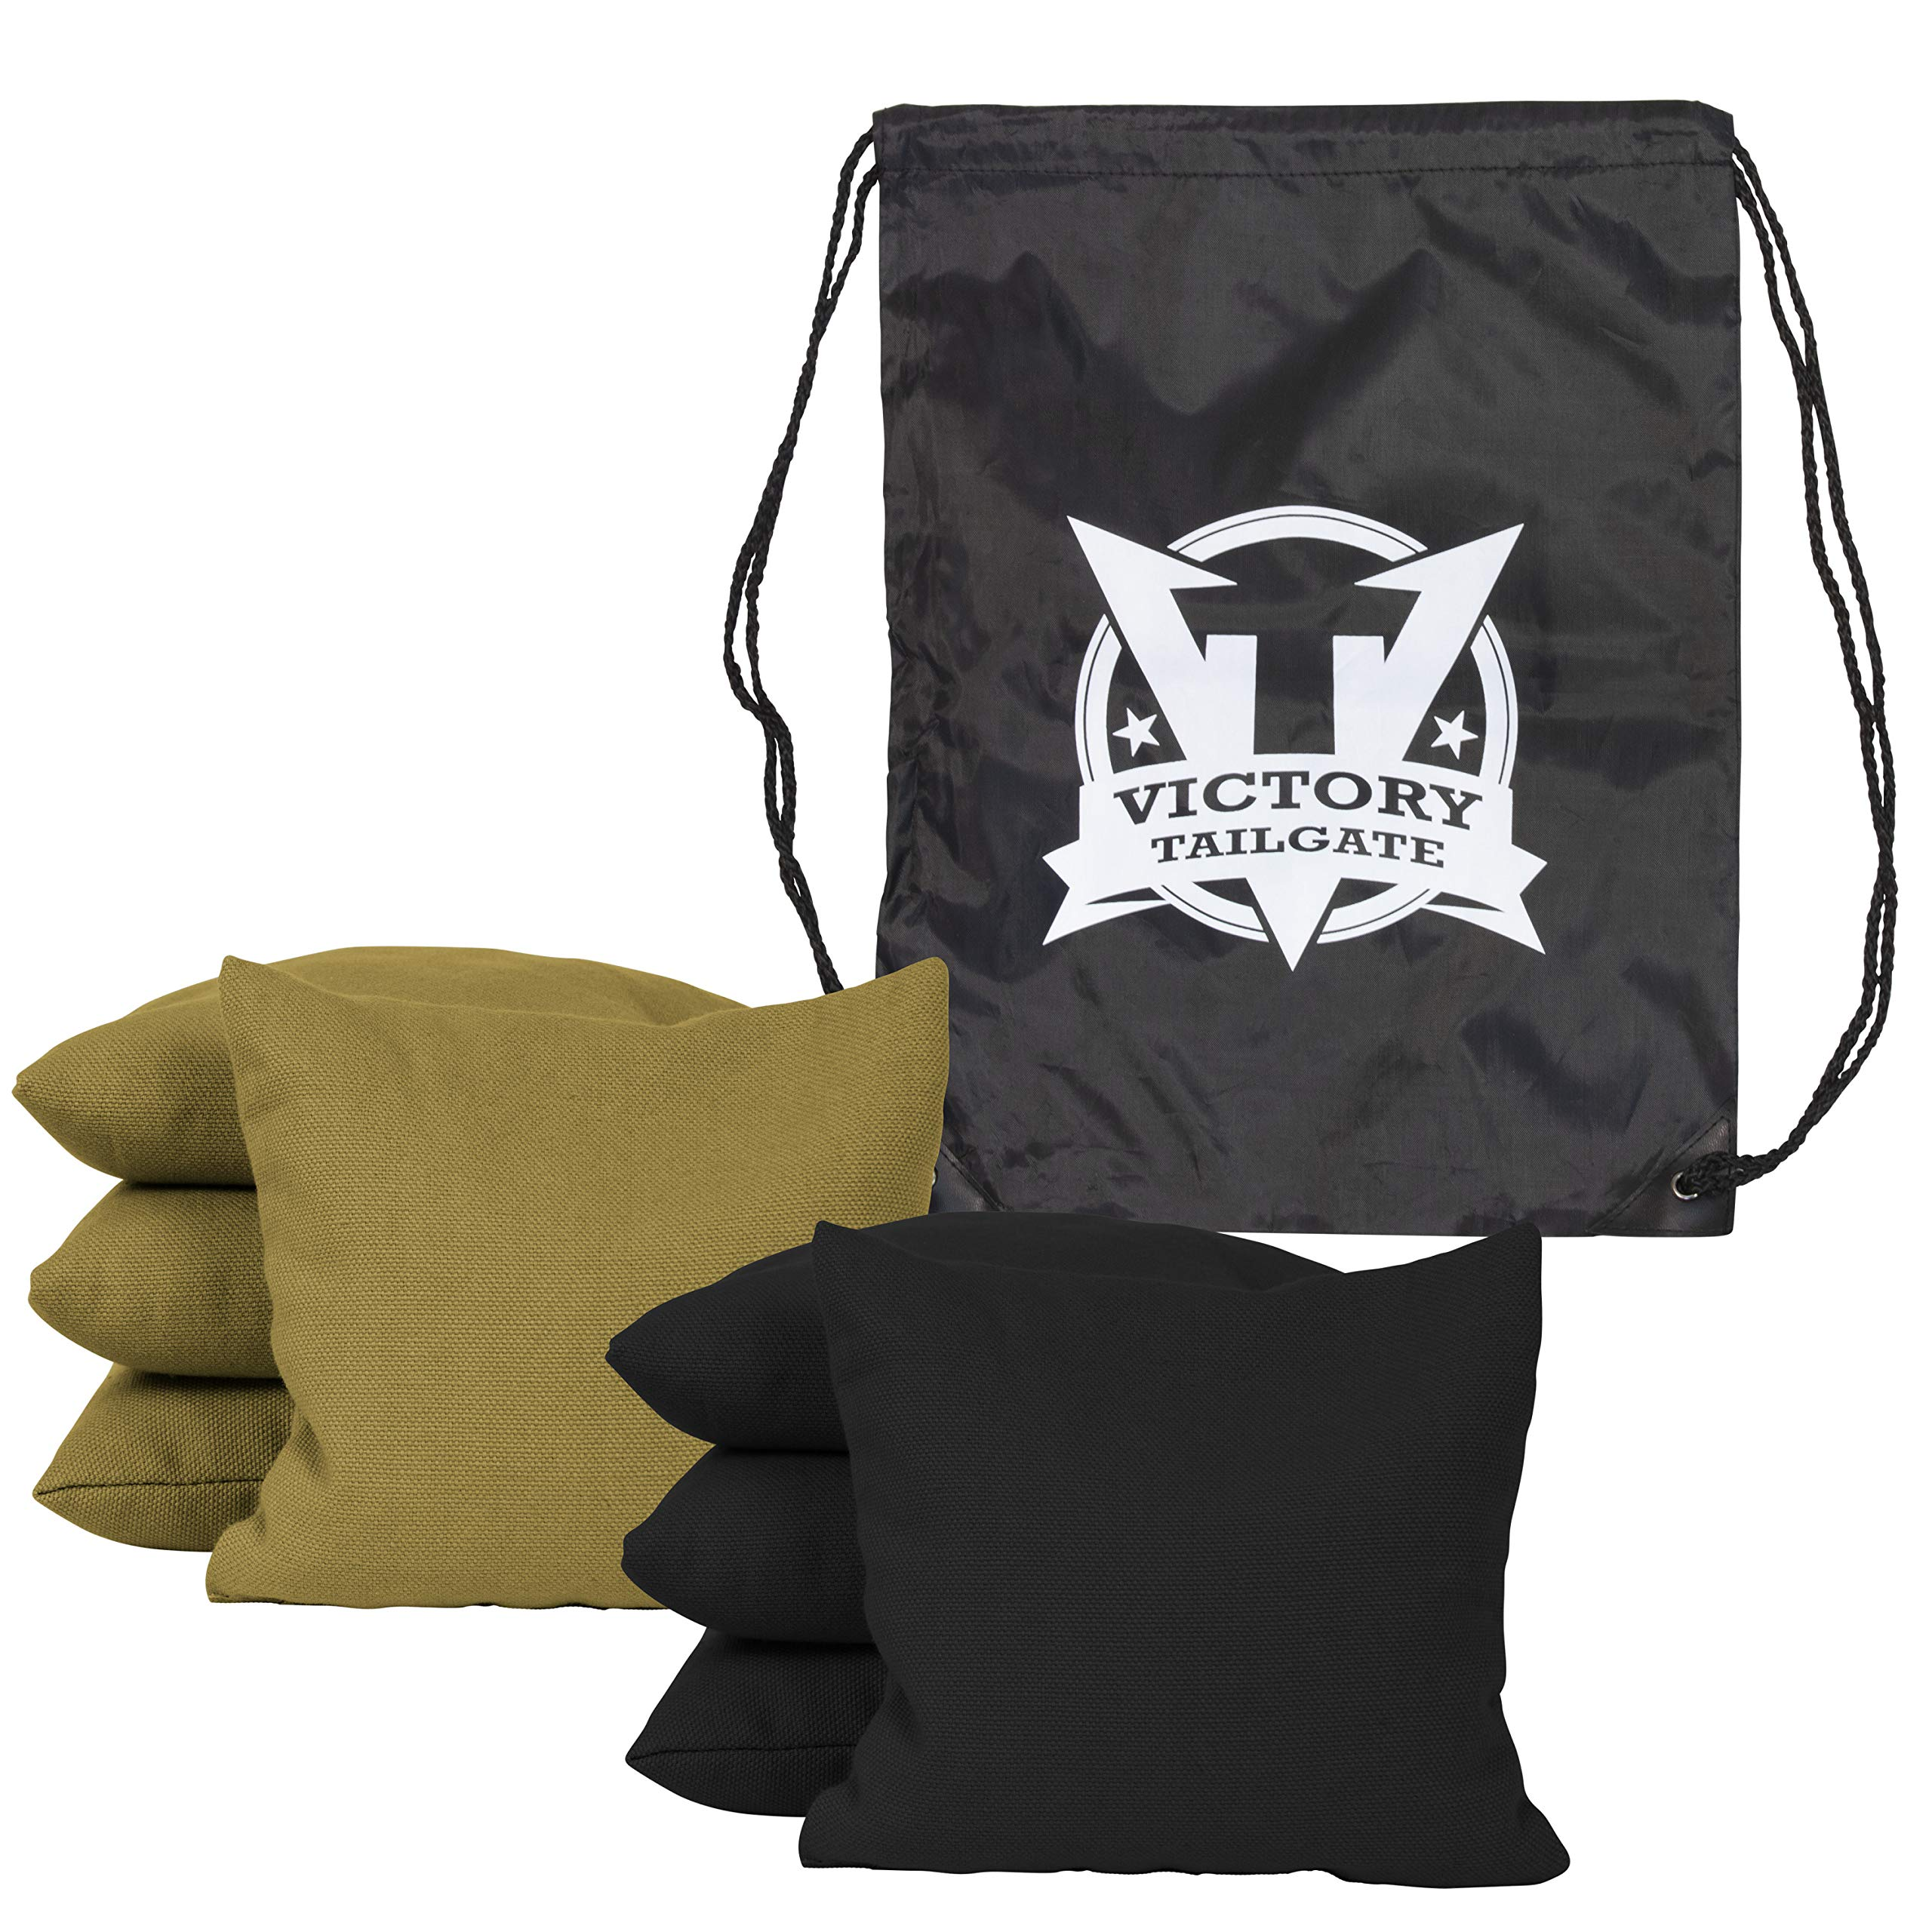 Victory Tailgate 8 Colored Corn Filled Regulation Cornhole Bags with Drawstring Pack (4 Black, 4 Gold) by Victory Tailgate (Image #1)